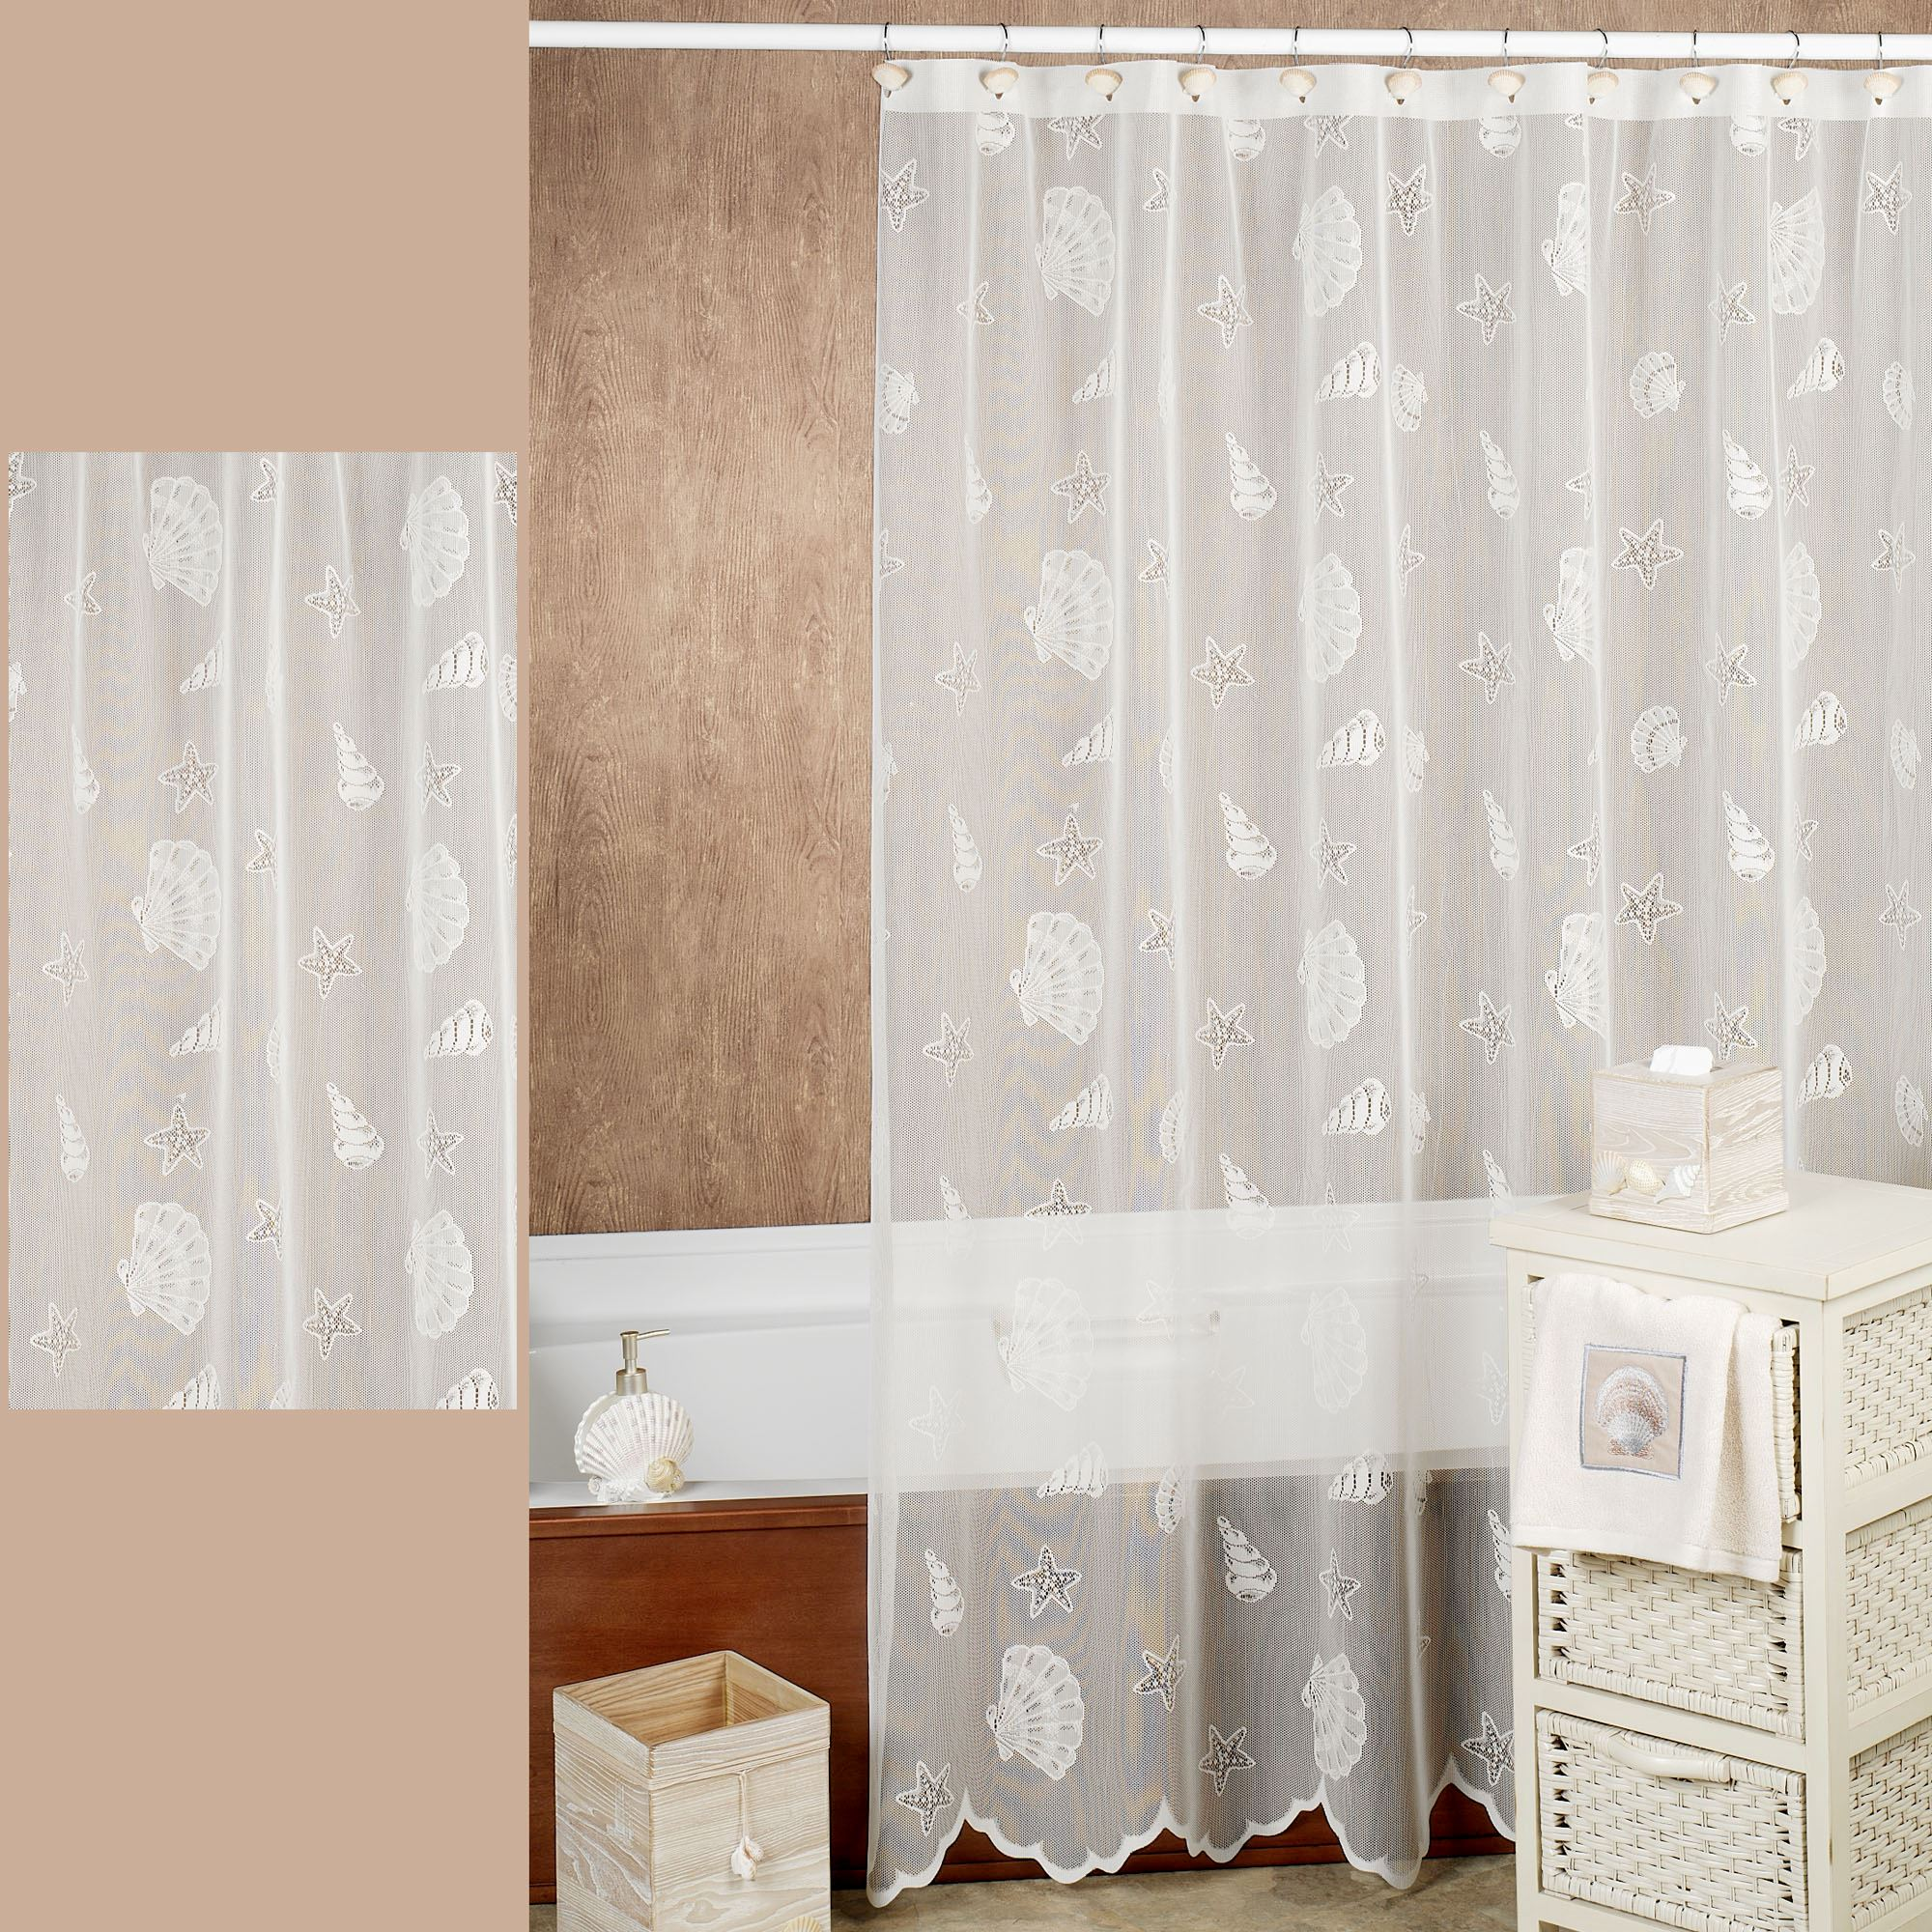 Touch To Zoom · Seashells Lace Shower Curtain ...